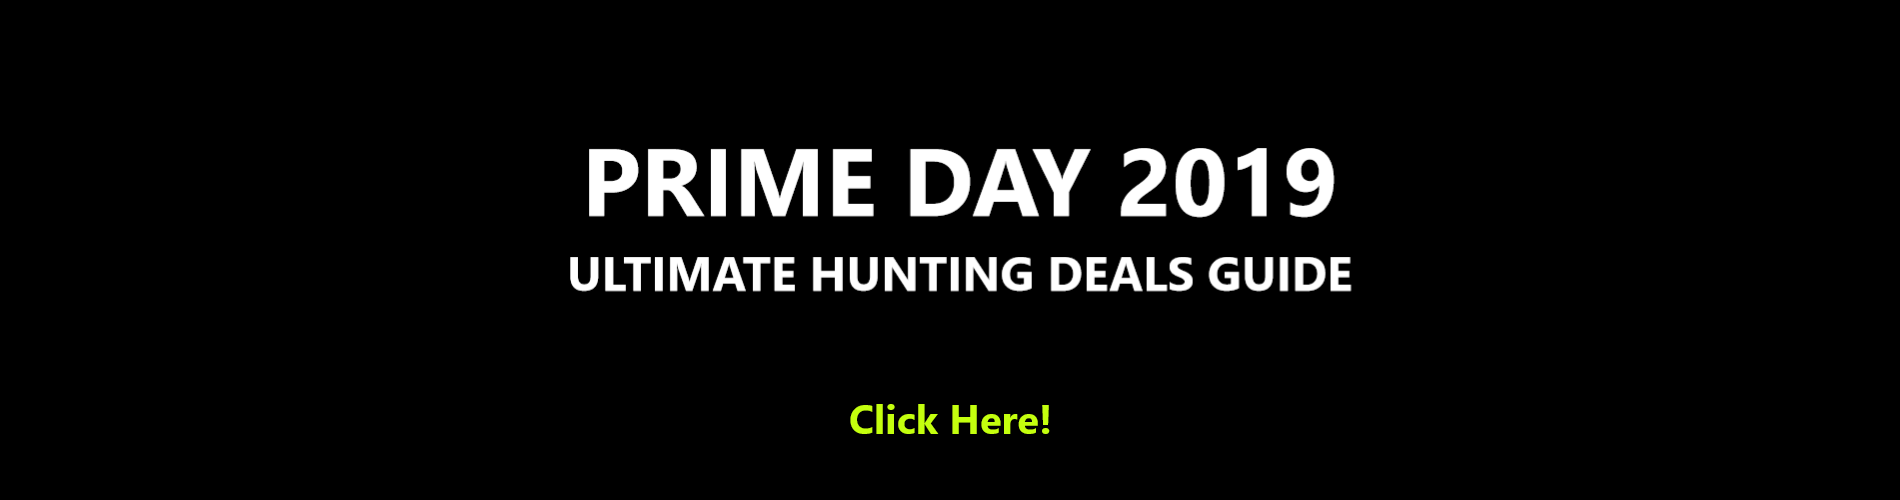 prime day 2019 deals guide